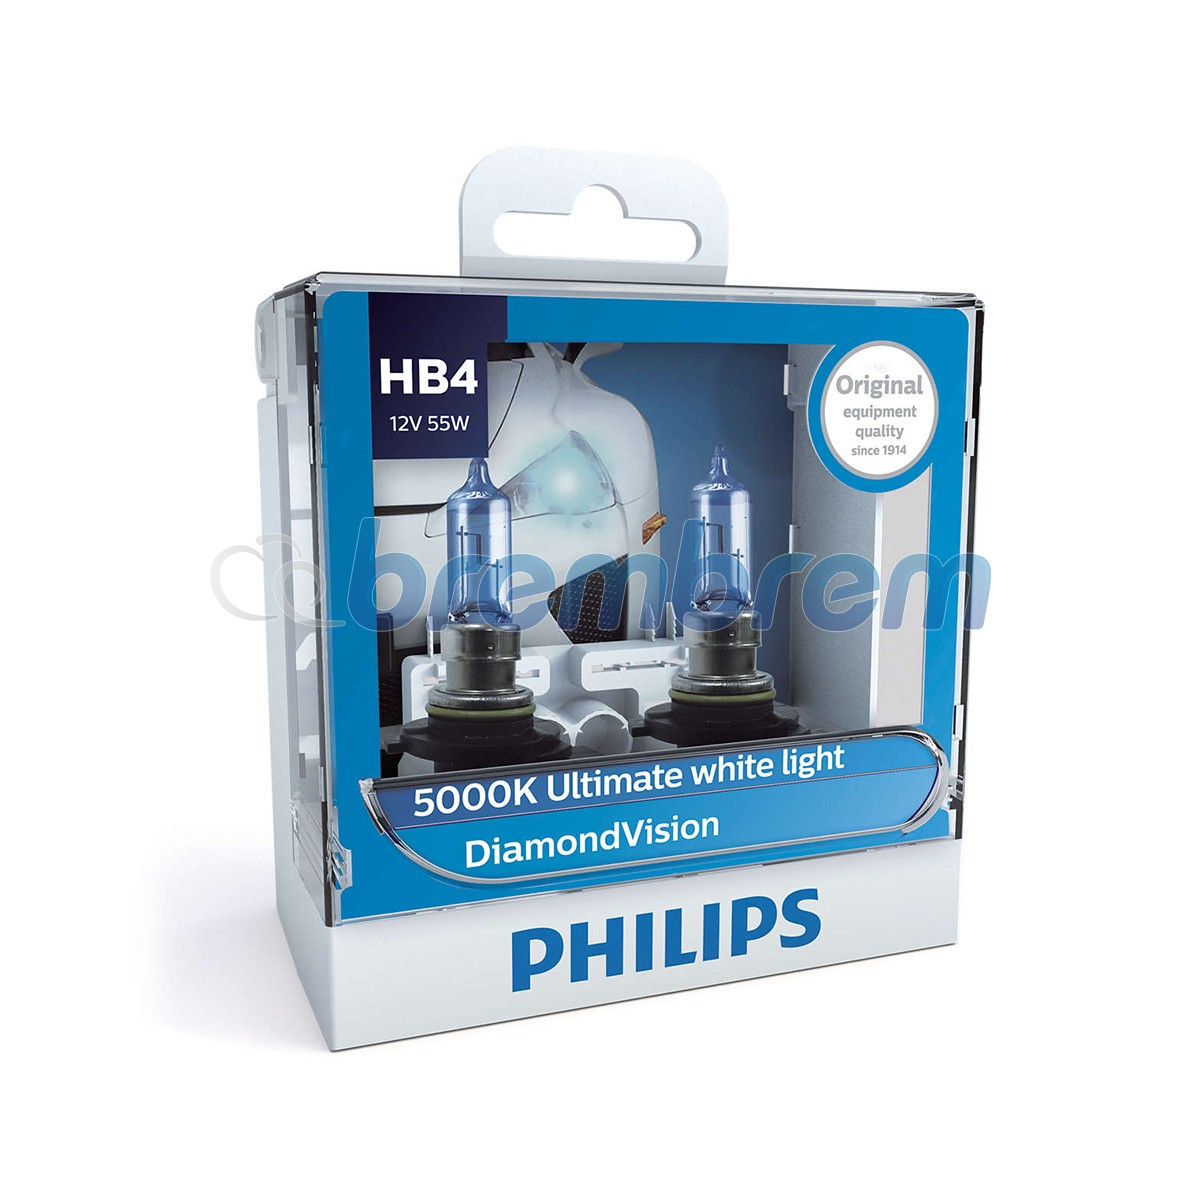 PHILIPS DIAMOND VISION HB4 (5000K) - LAMPU HALOGEN